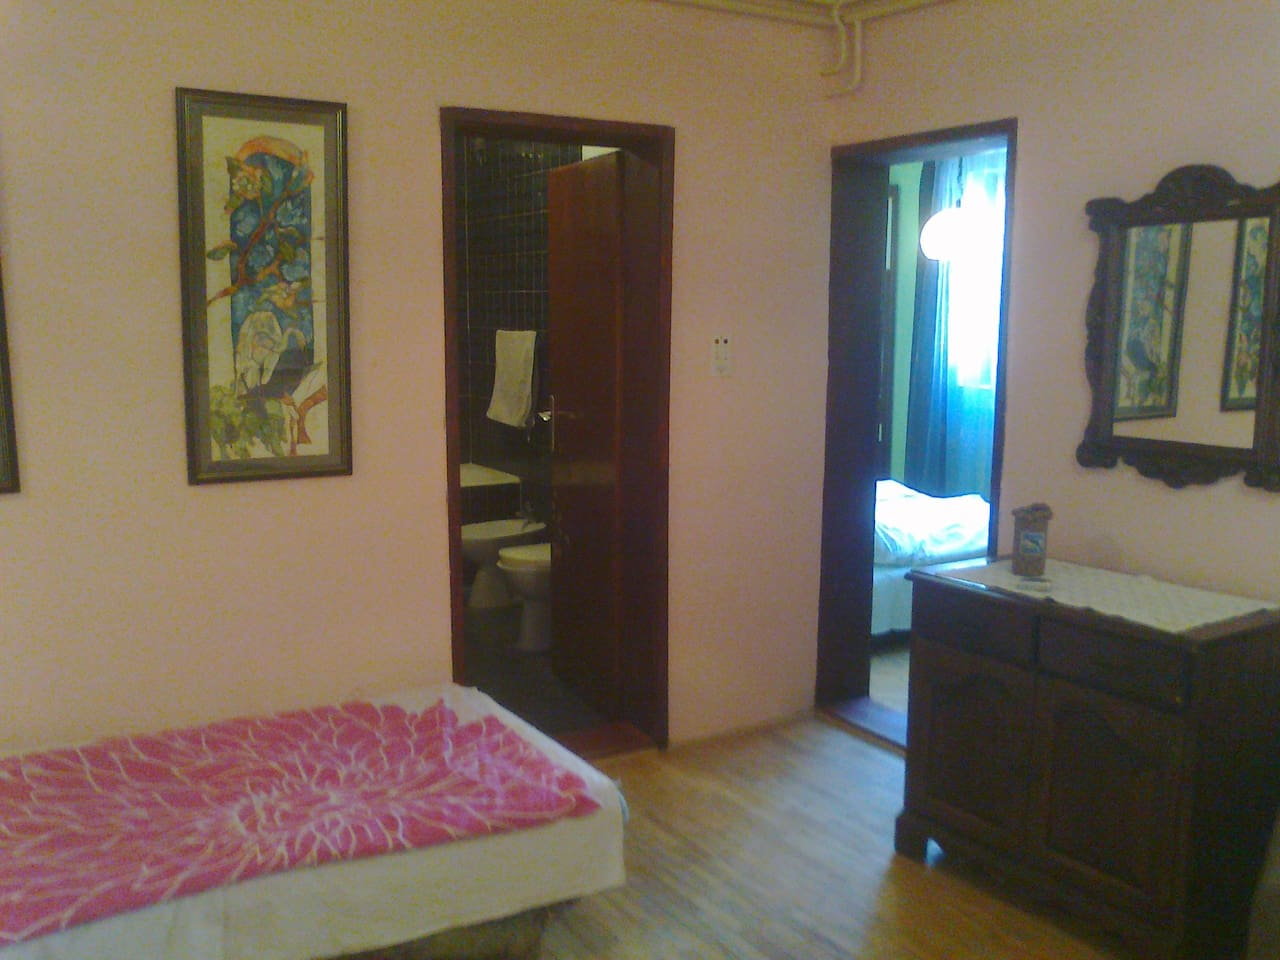 2 bedroom flat + parking, Novi Sad